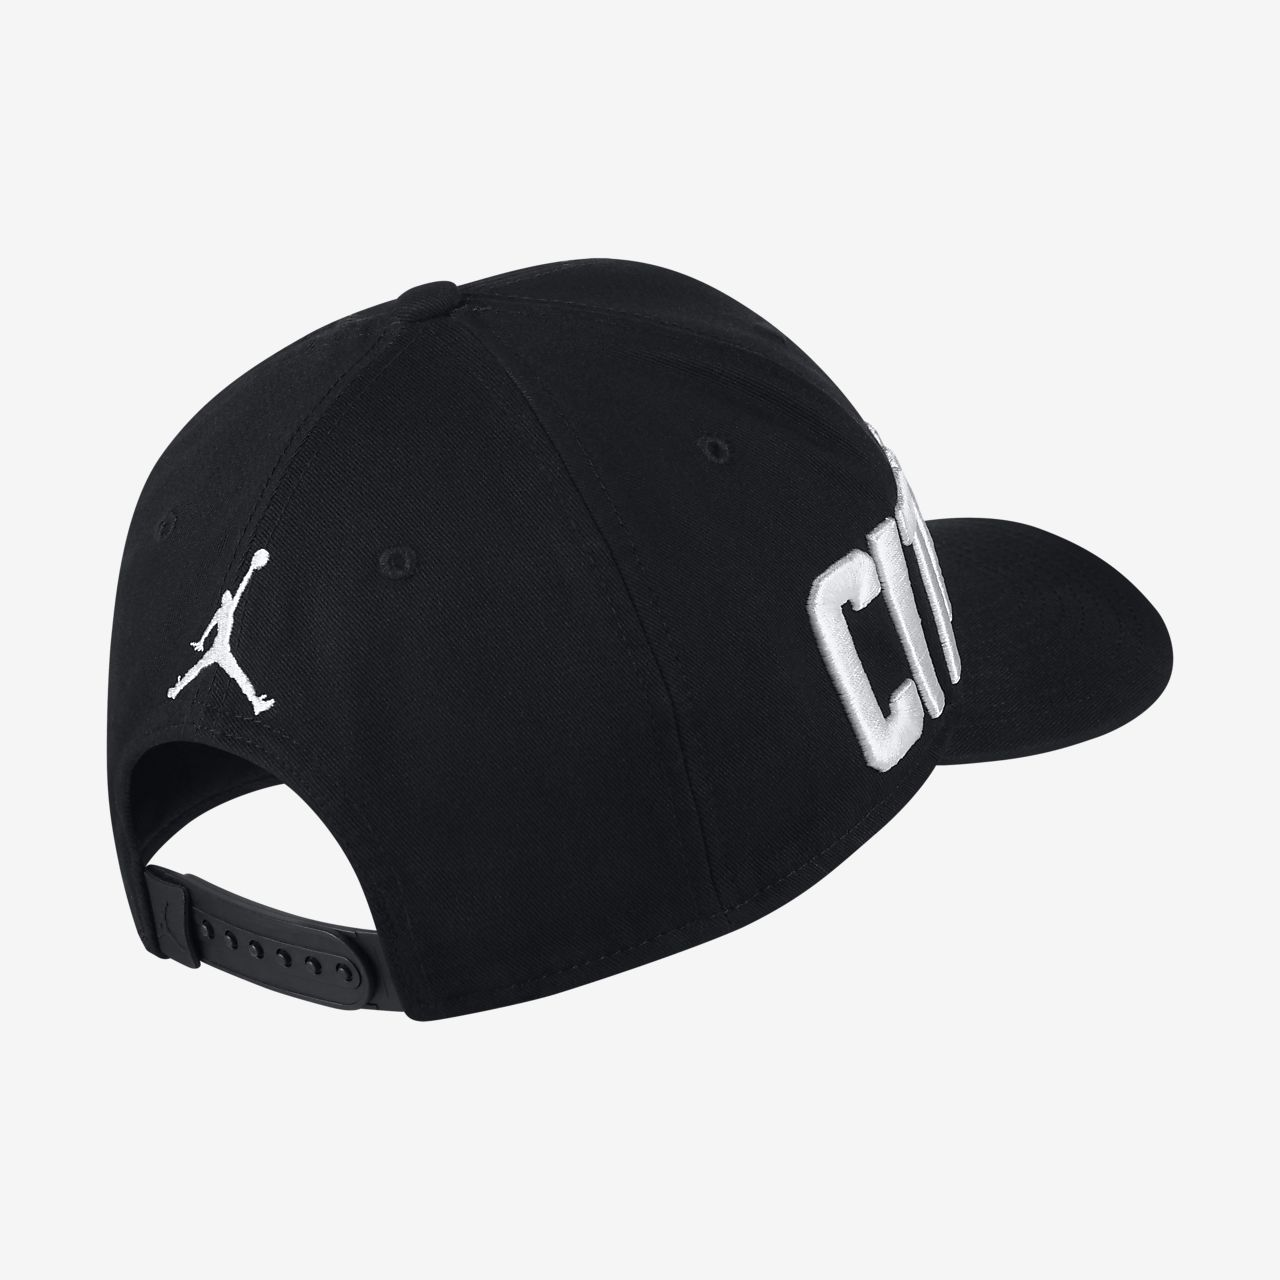 01824d0b94a Jordan Jumpman Classic 99 Adjustable Hat. Nike.com IE